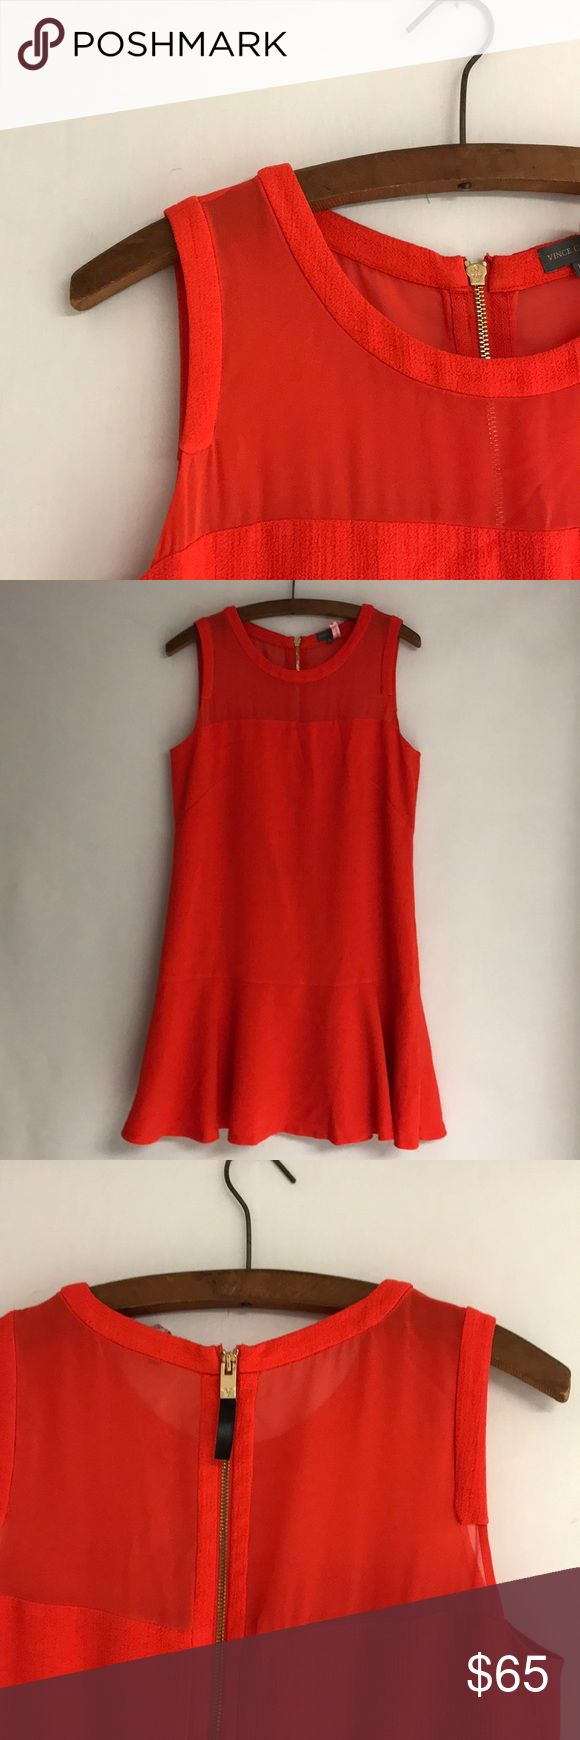 """VC Raffle Shift Dress Shift Textured Dress. Orange fabric, sheer top sleeveless, and ruffle hem design a versatile dress. - round neck -Back exposed zip closure - Lined - Approx. 35"""" length  - Imported Fiber Content Shell/lining: Poly/spandex True 10 Gorgeous!!! In great condition Wore only once (already dry cleaner). Vince Camuto Dresses Midi"""